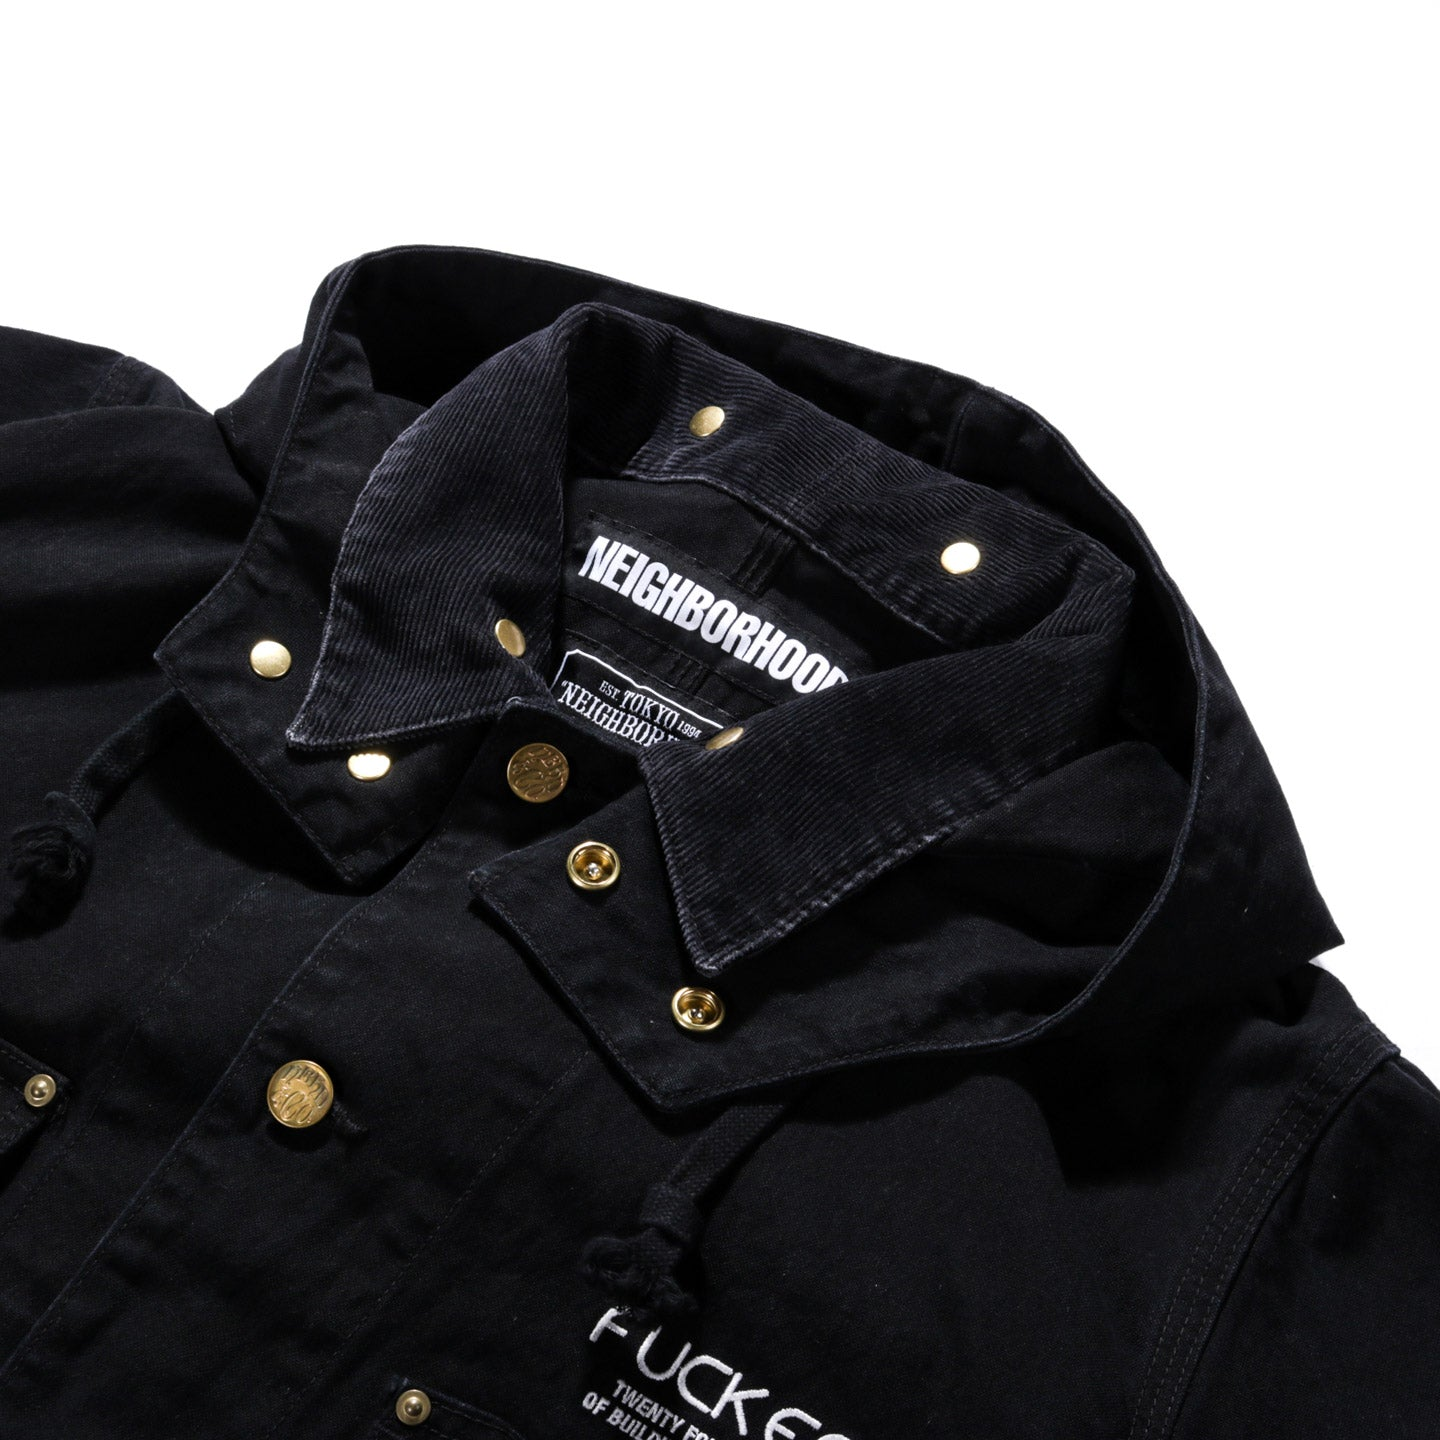 NEIGHBORHOOD DUCK COVERALL JACKET BLACK